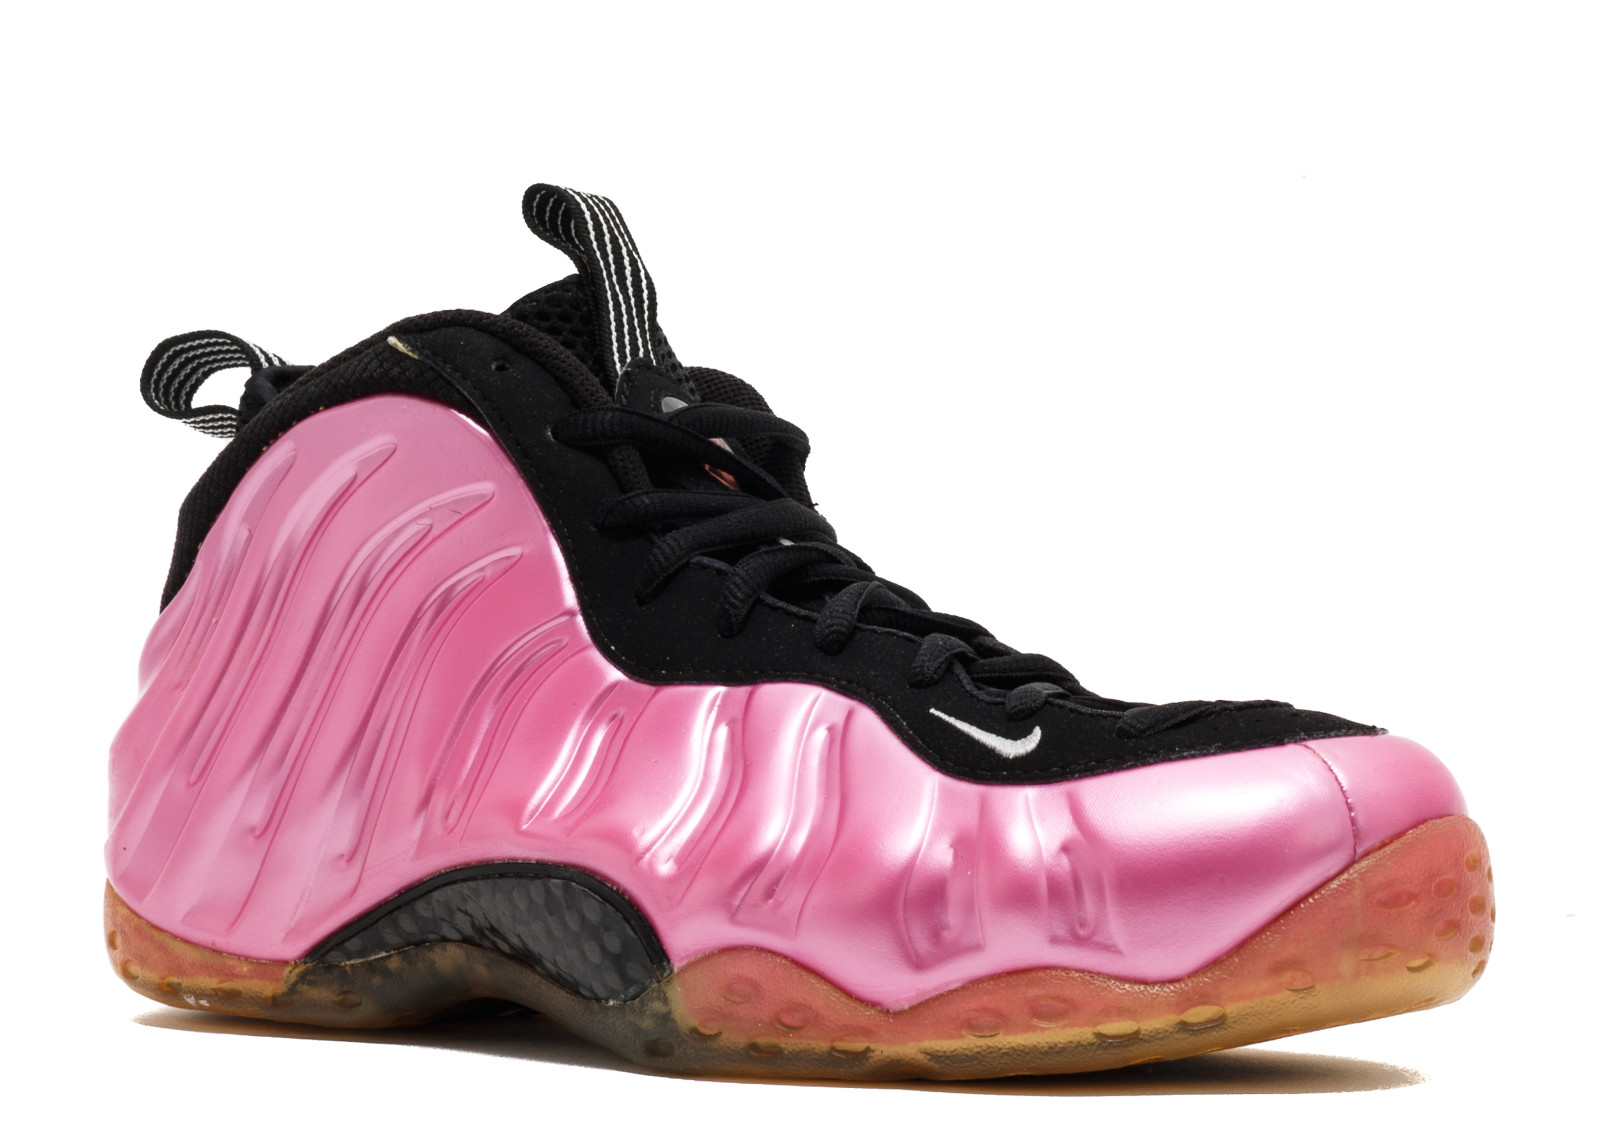 a97d2f1b18e Air Foamposite One  Pearlized Pink  - 314996-600 - Size 13